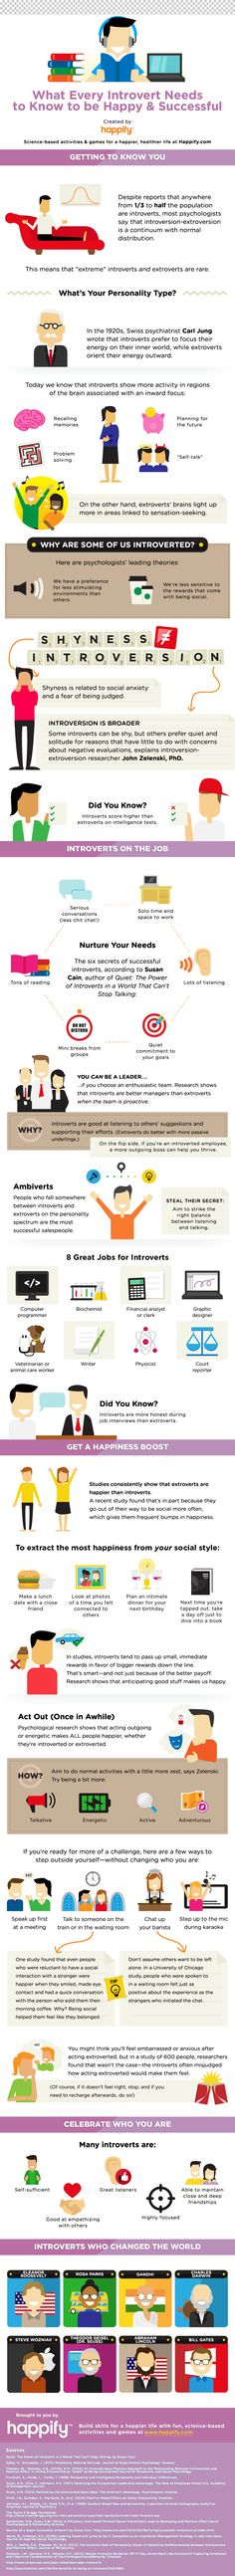 Infographic: What Every Introvert Needs To Know To Be Happy & Successful - DesignTAXI.com